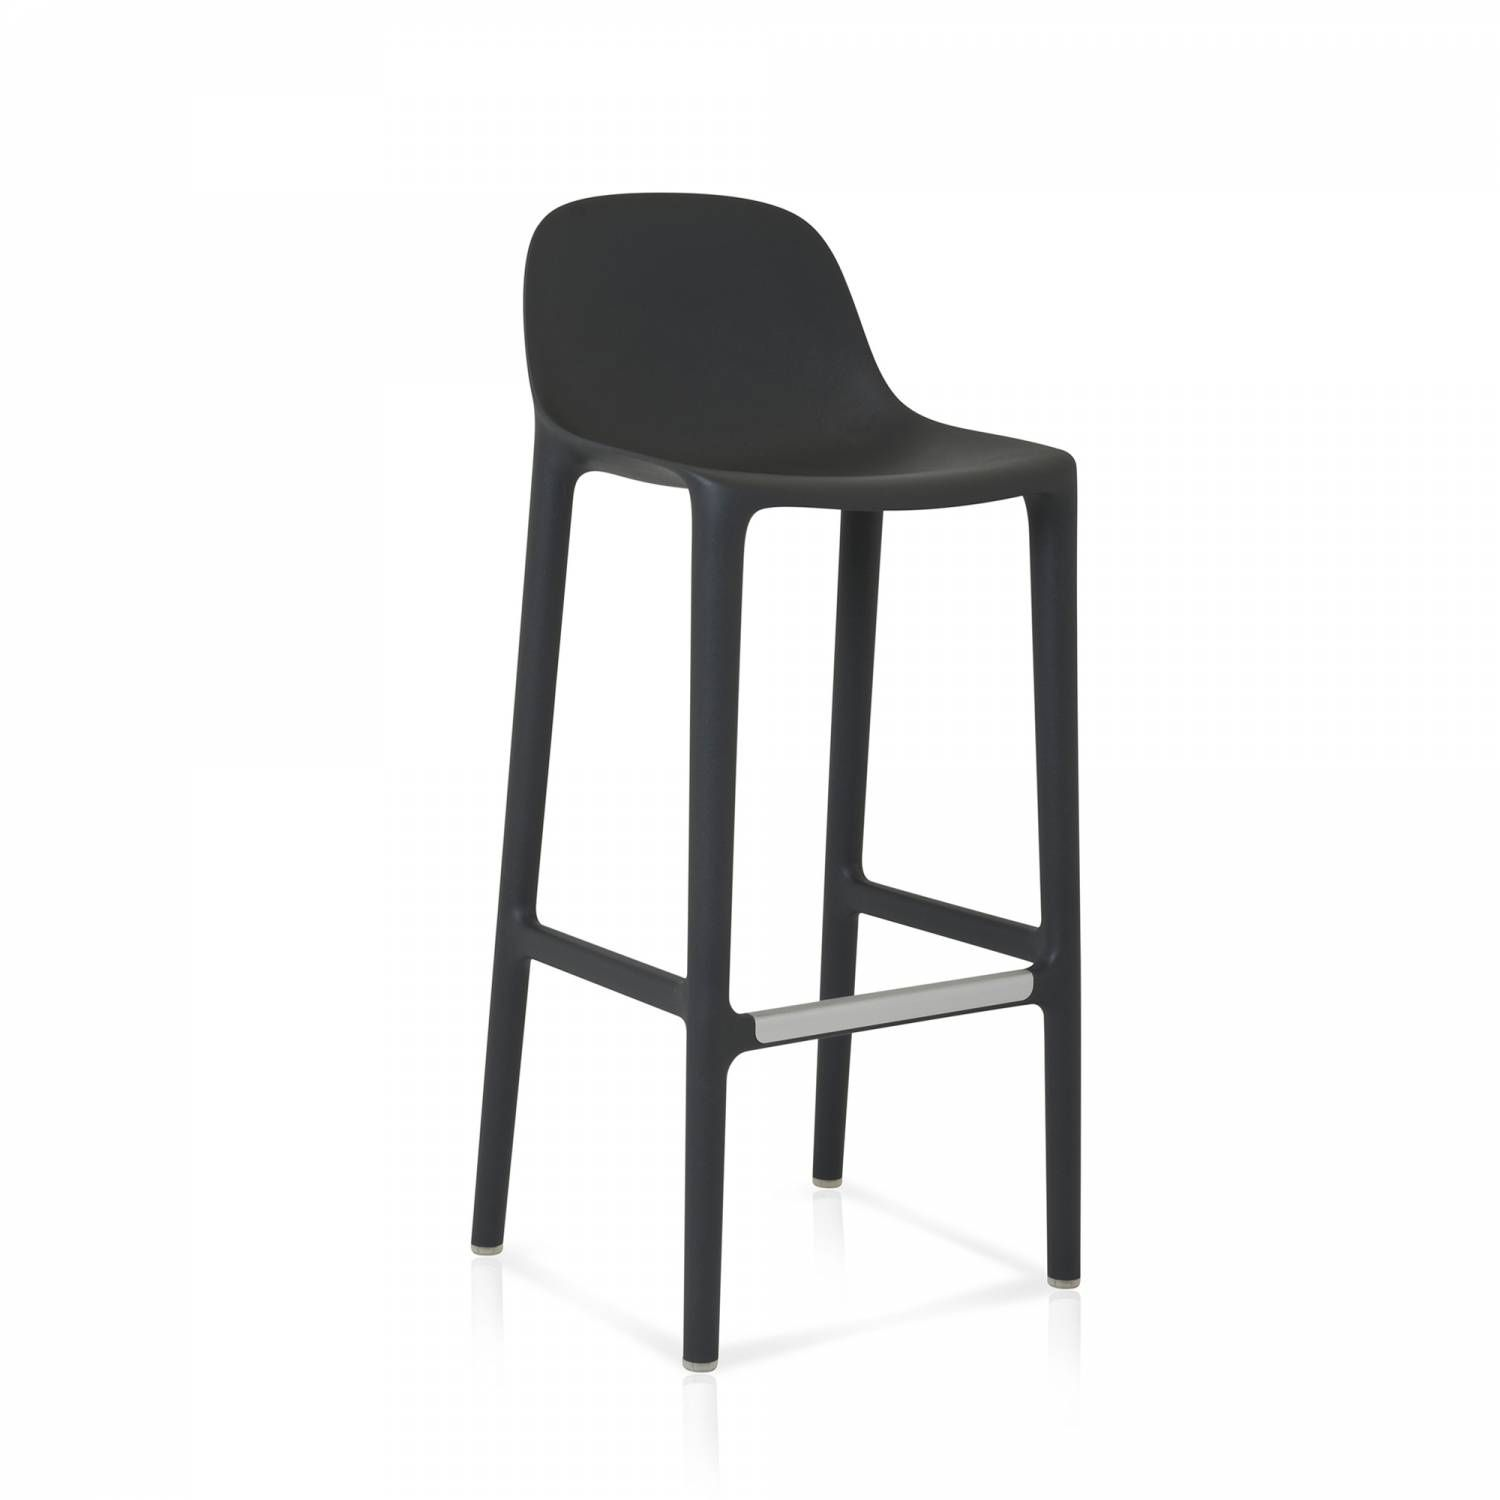 Broom 30 Barstool Imagine Says Philippe Starck A Guy Who Takes A Humble Broom And Starts To Clean The Workshop And With Emeco Modern Bar Stools Bar Stools